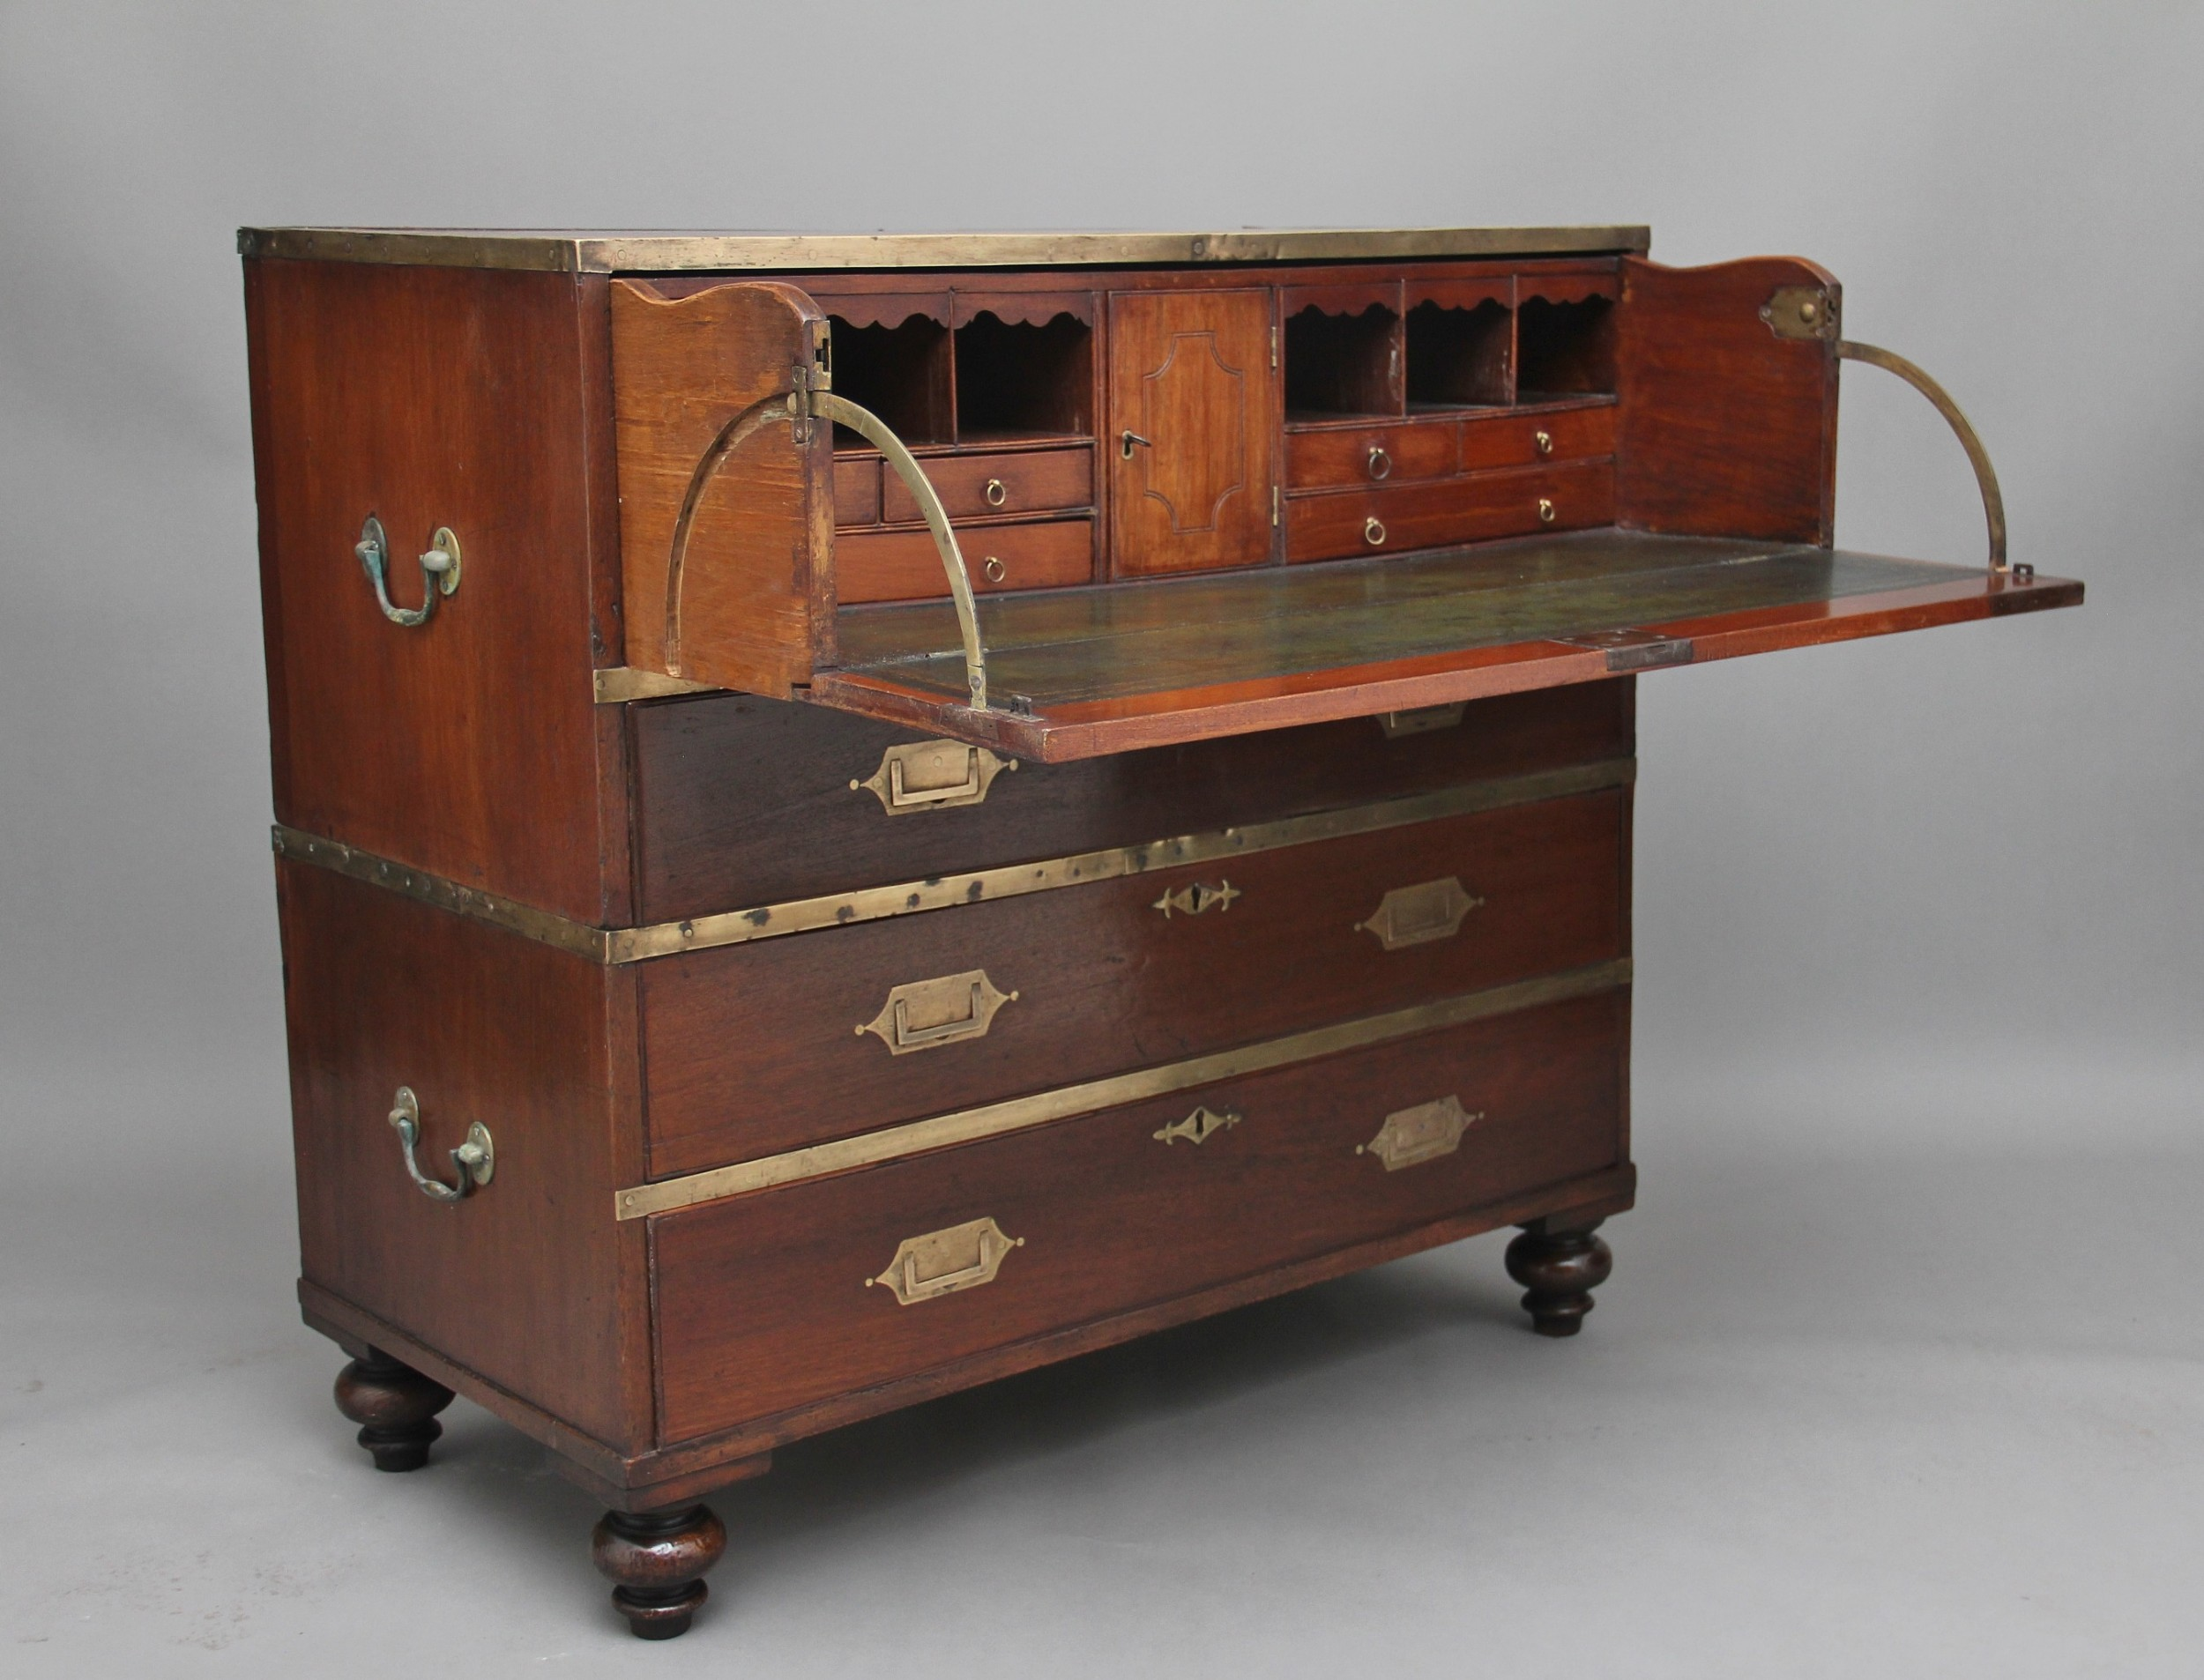 19th century angloindian military chest